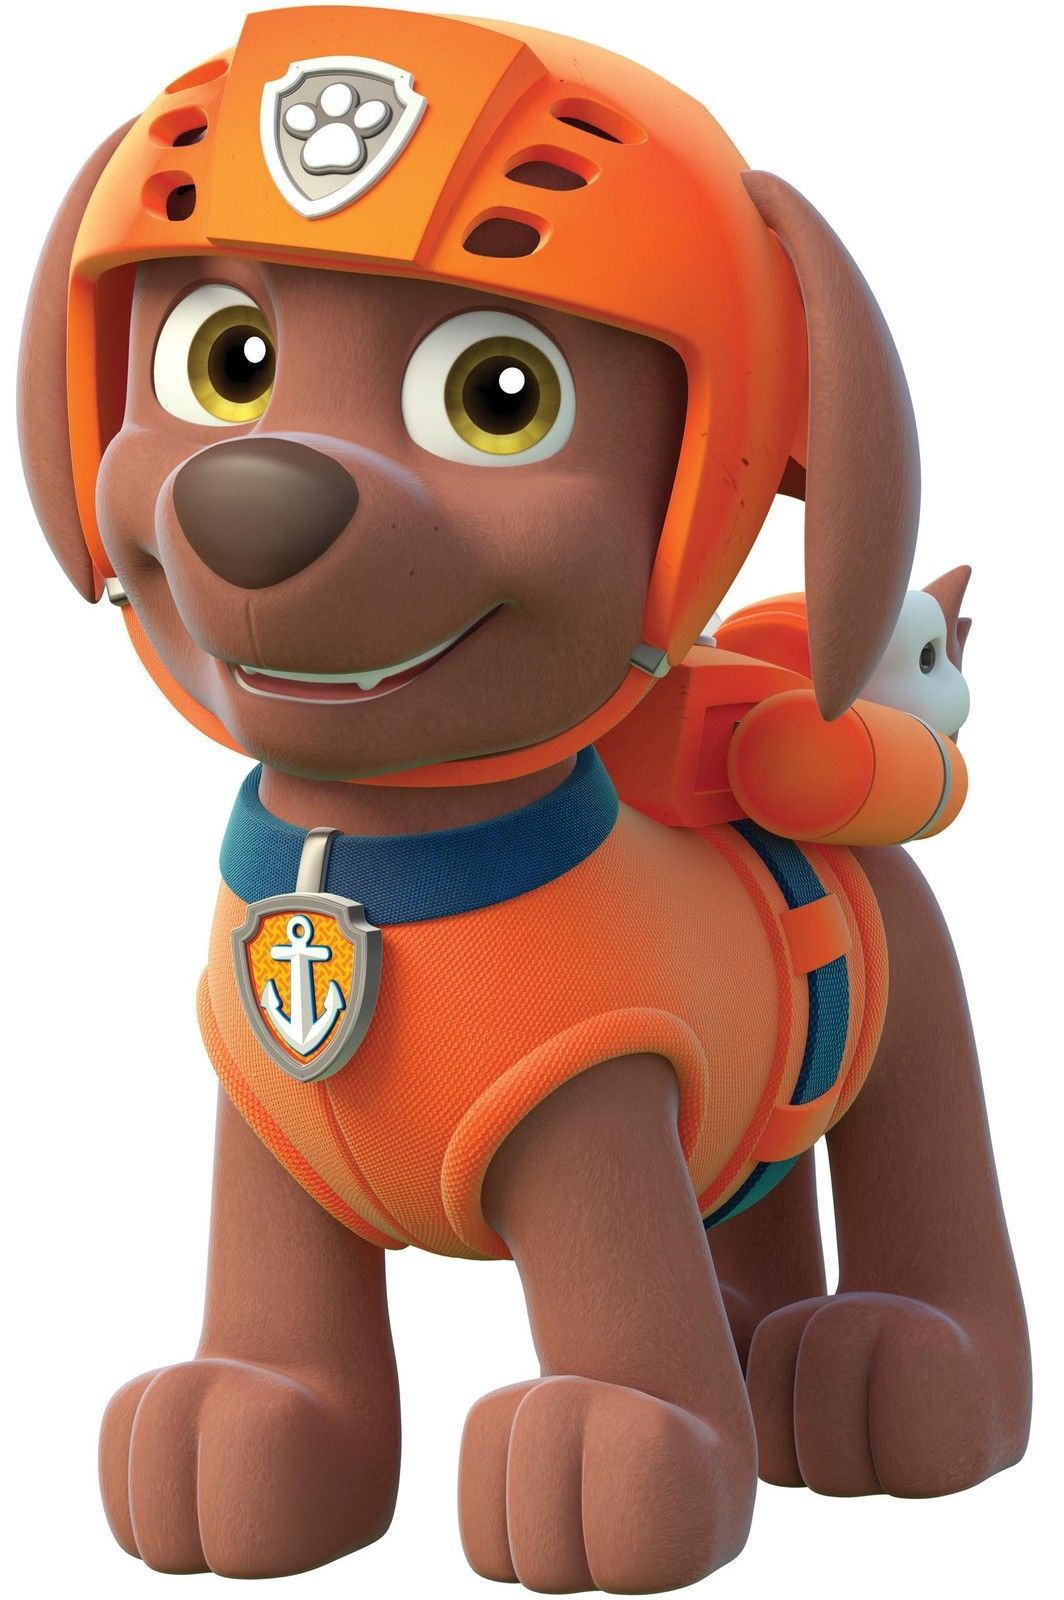 """Paw Patrol Everest Iron On Transfer 5 /""""x 6.5/"""" for LIGHT Colored Fabric"""